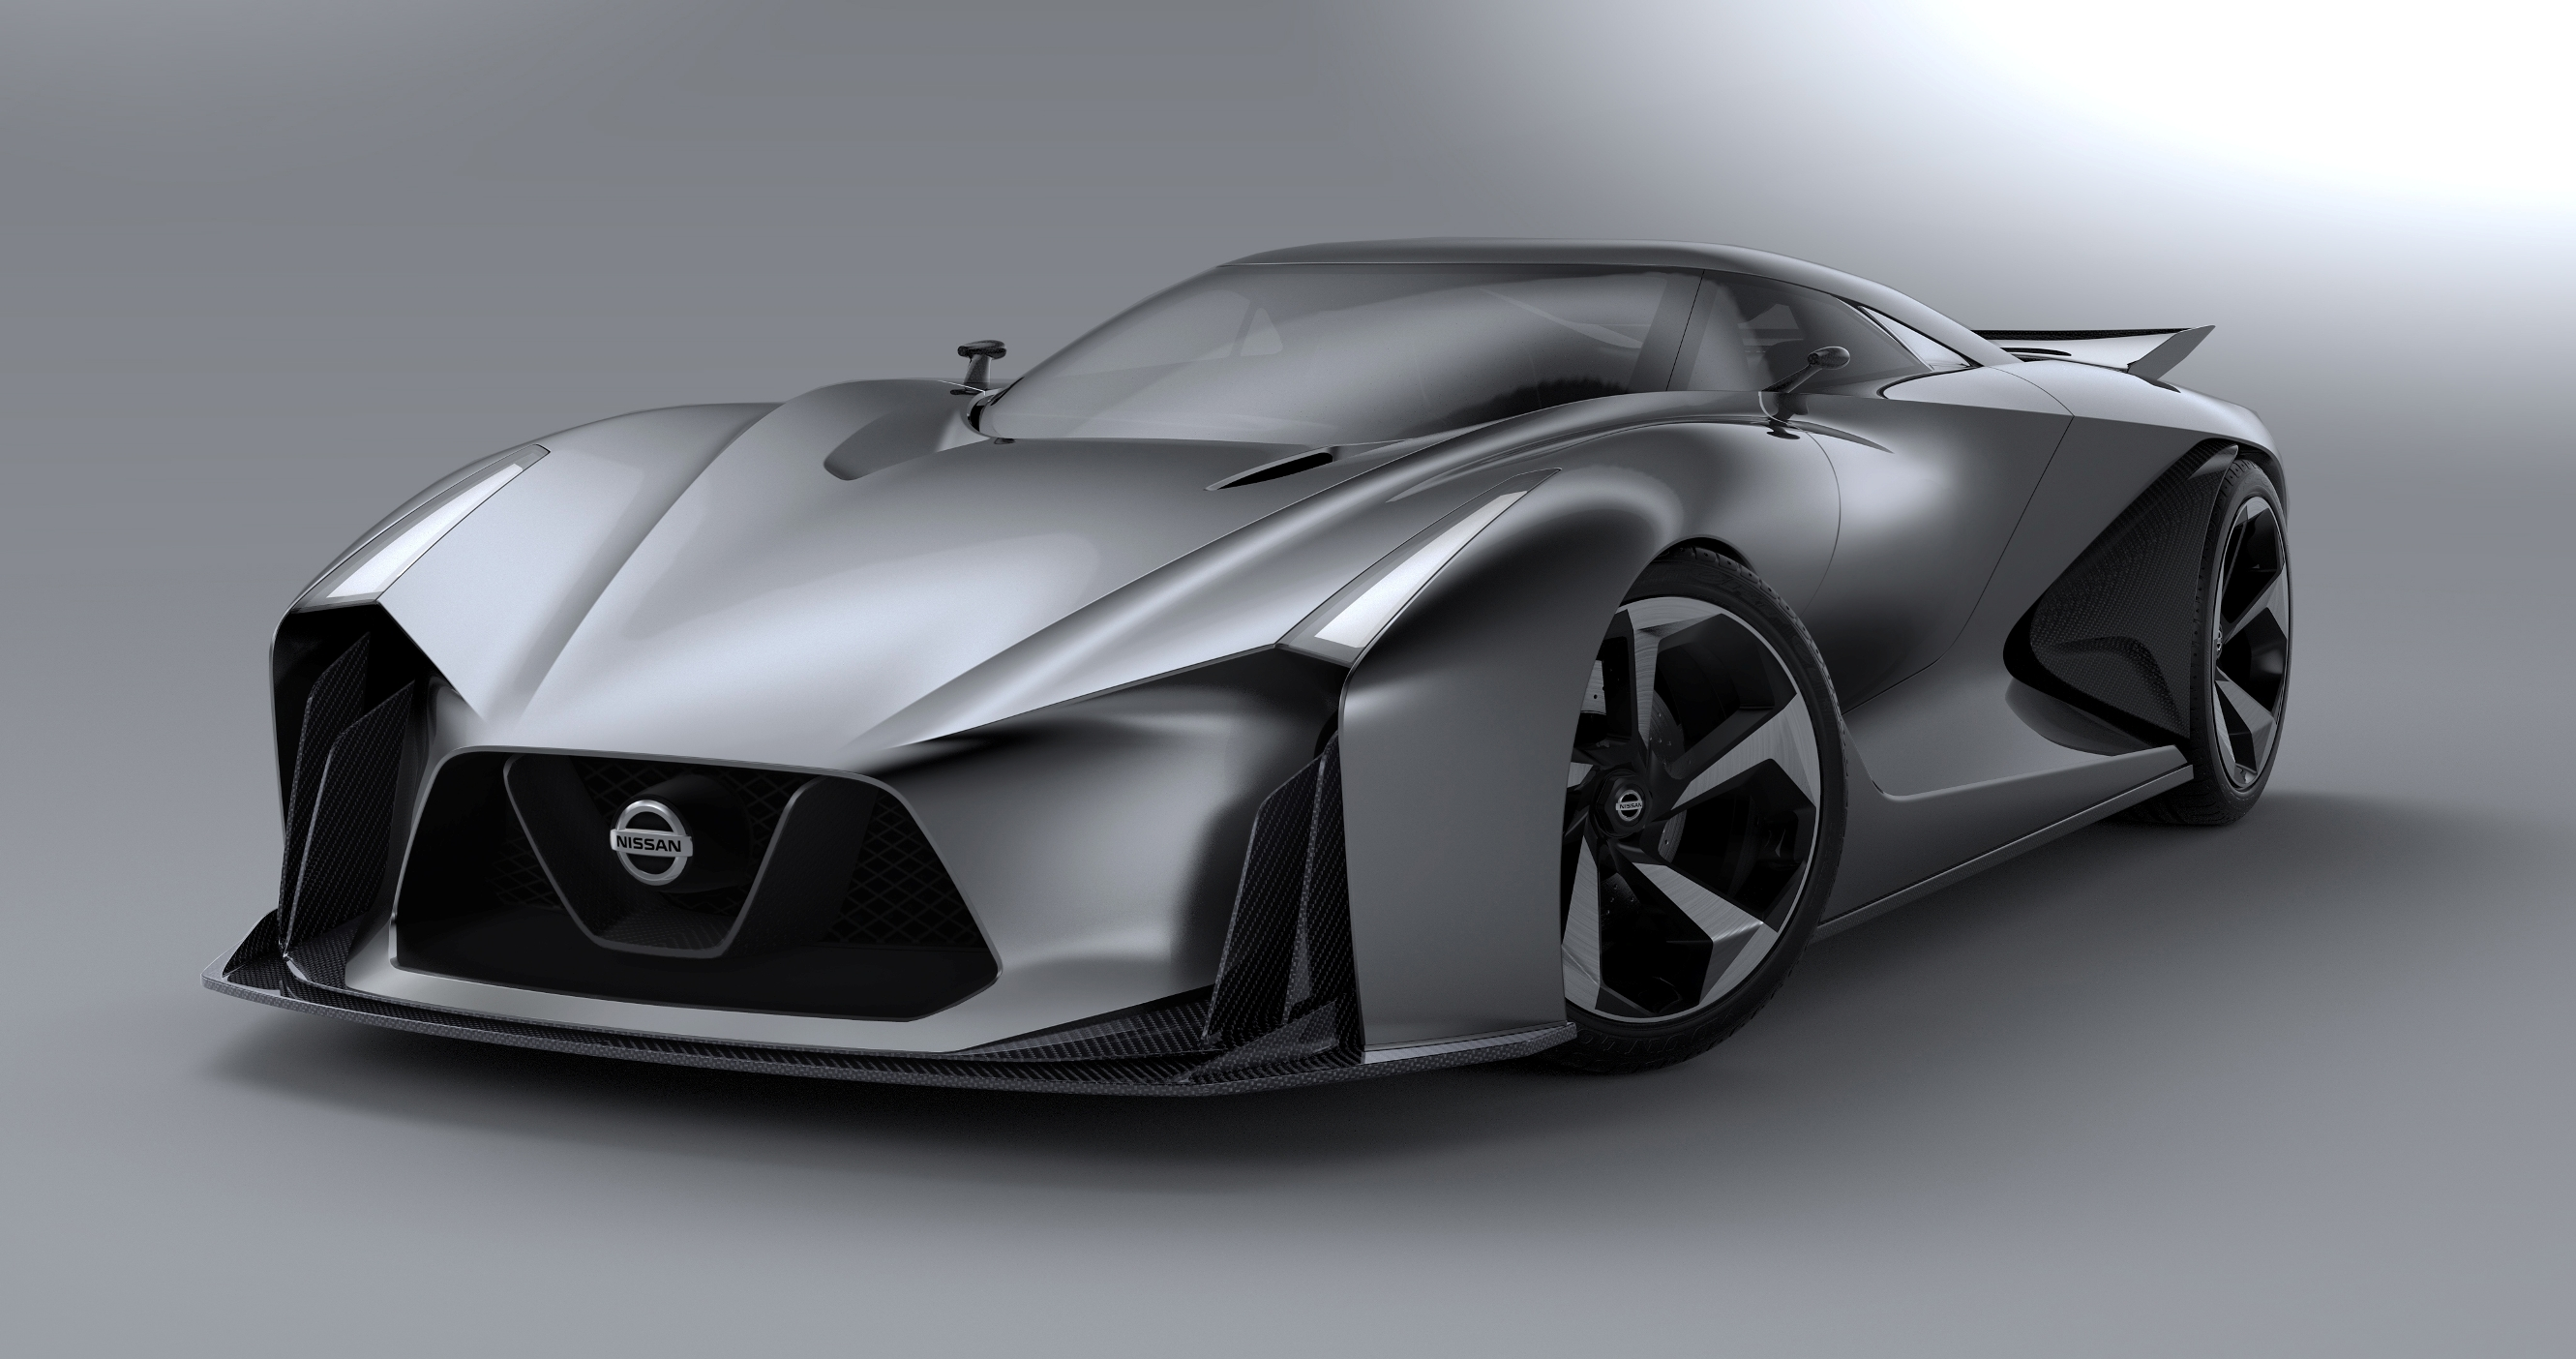 If Only Nissan Built The Nissan Concept Vision Grand Turismo